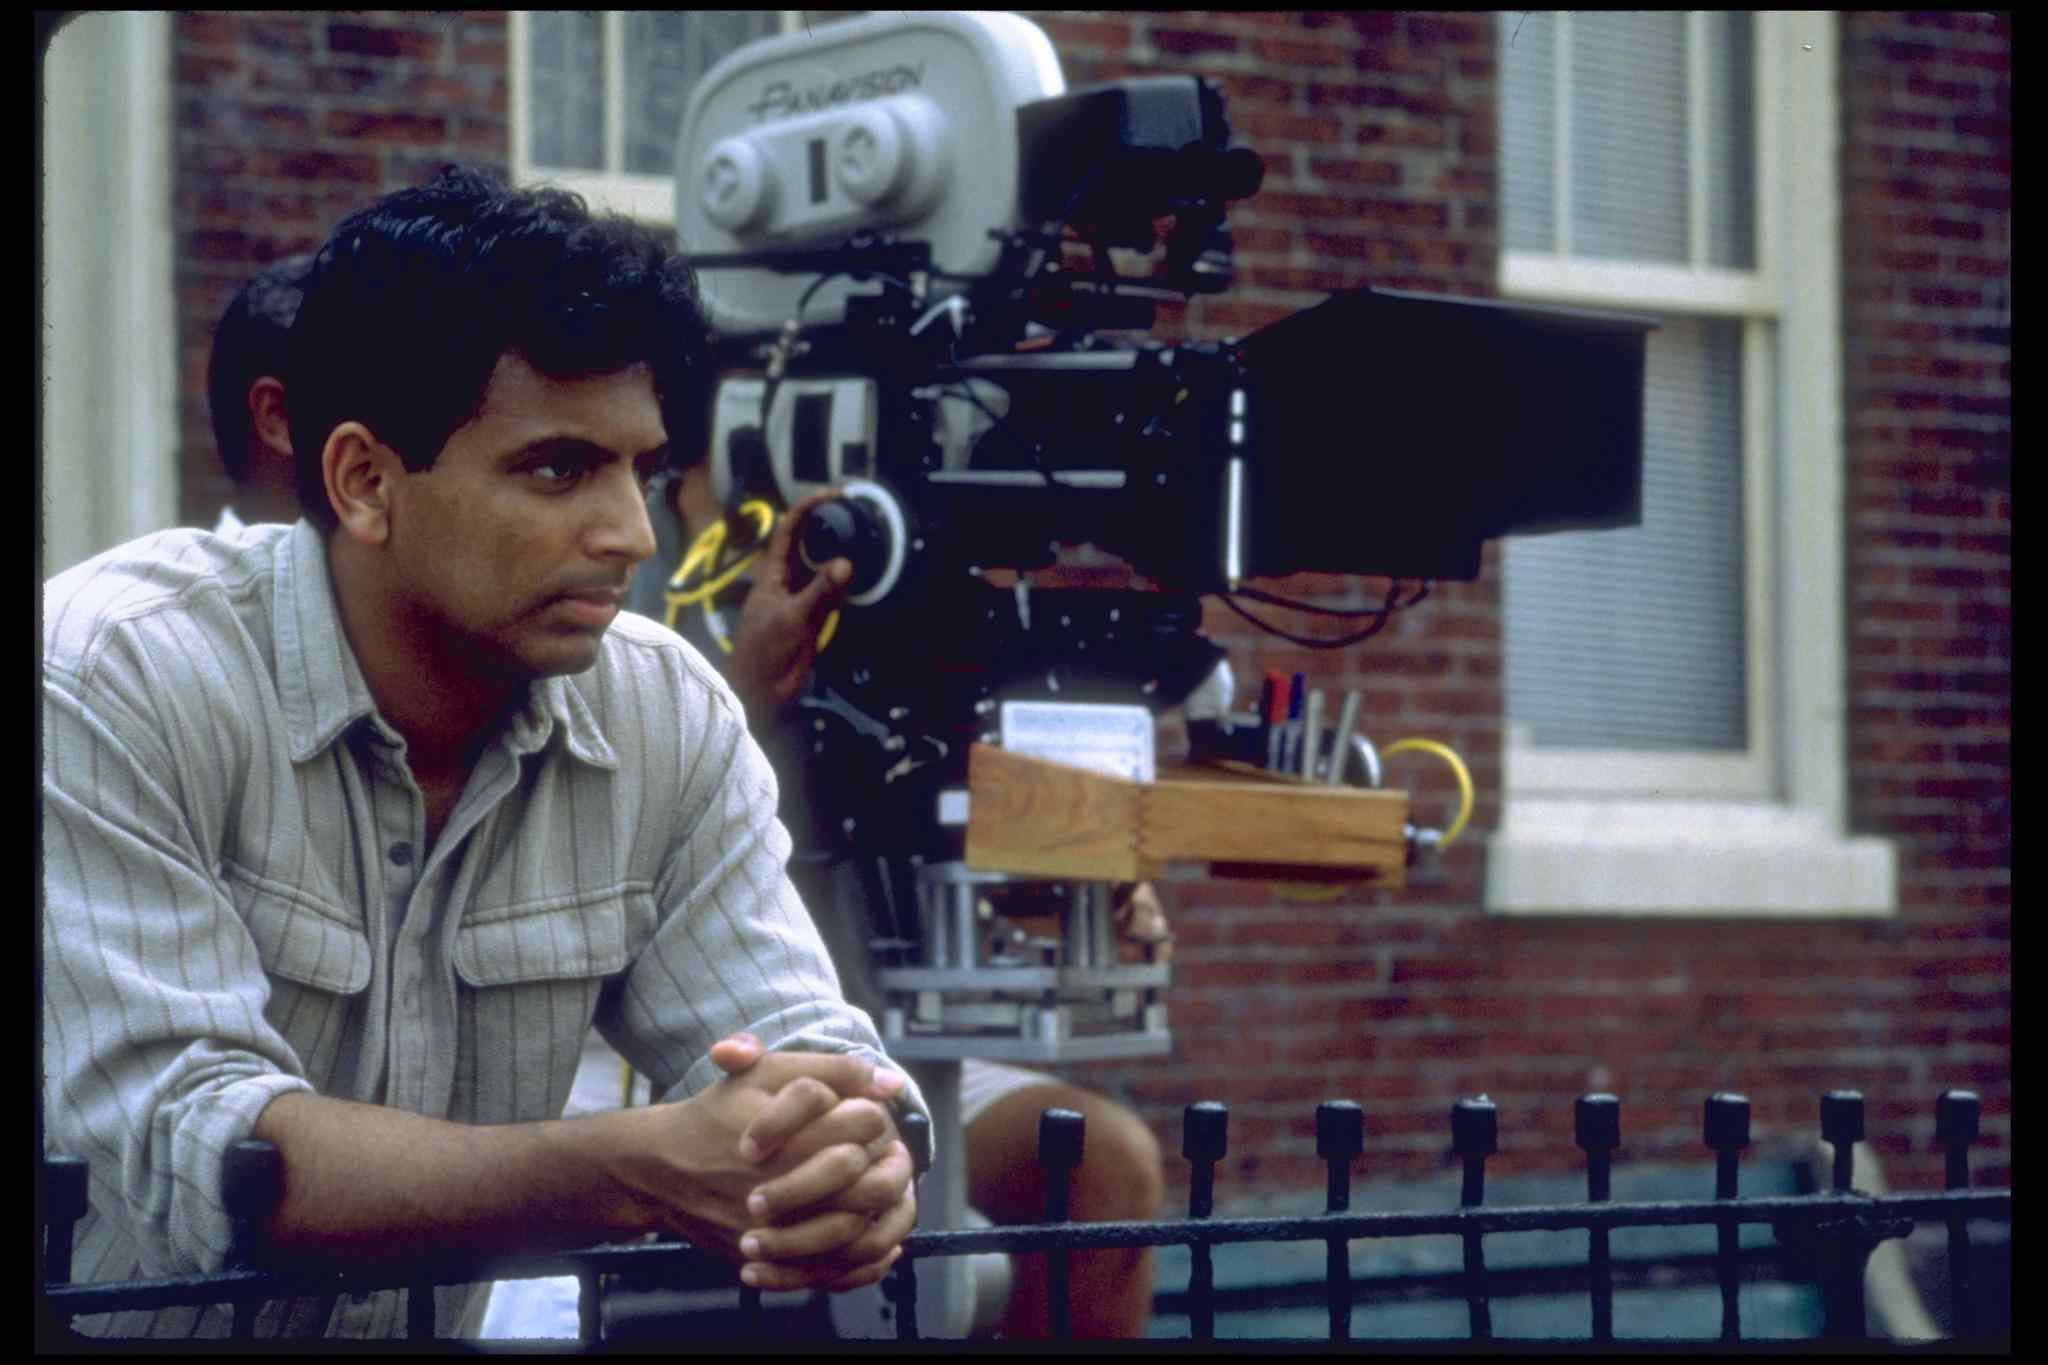 M Night Shyamalan hard at work directed his hit movies.